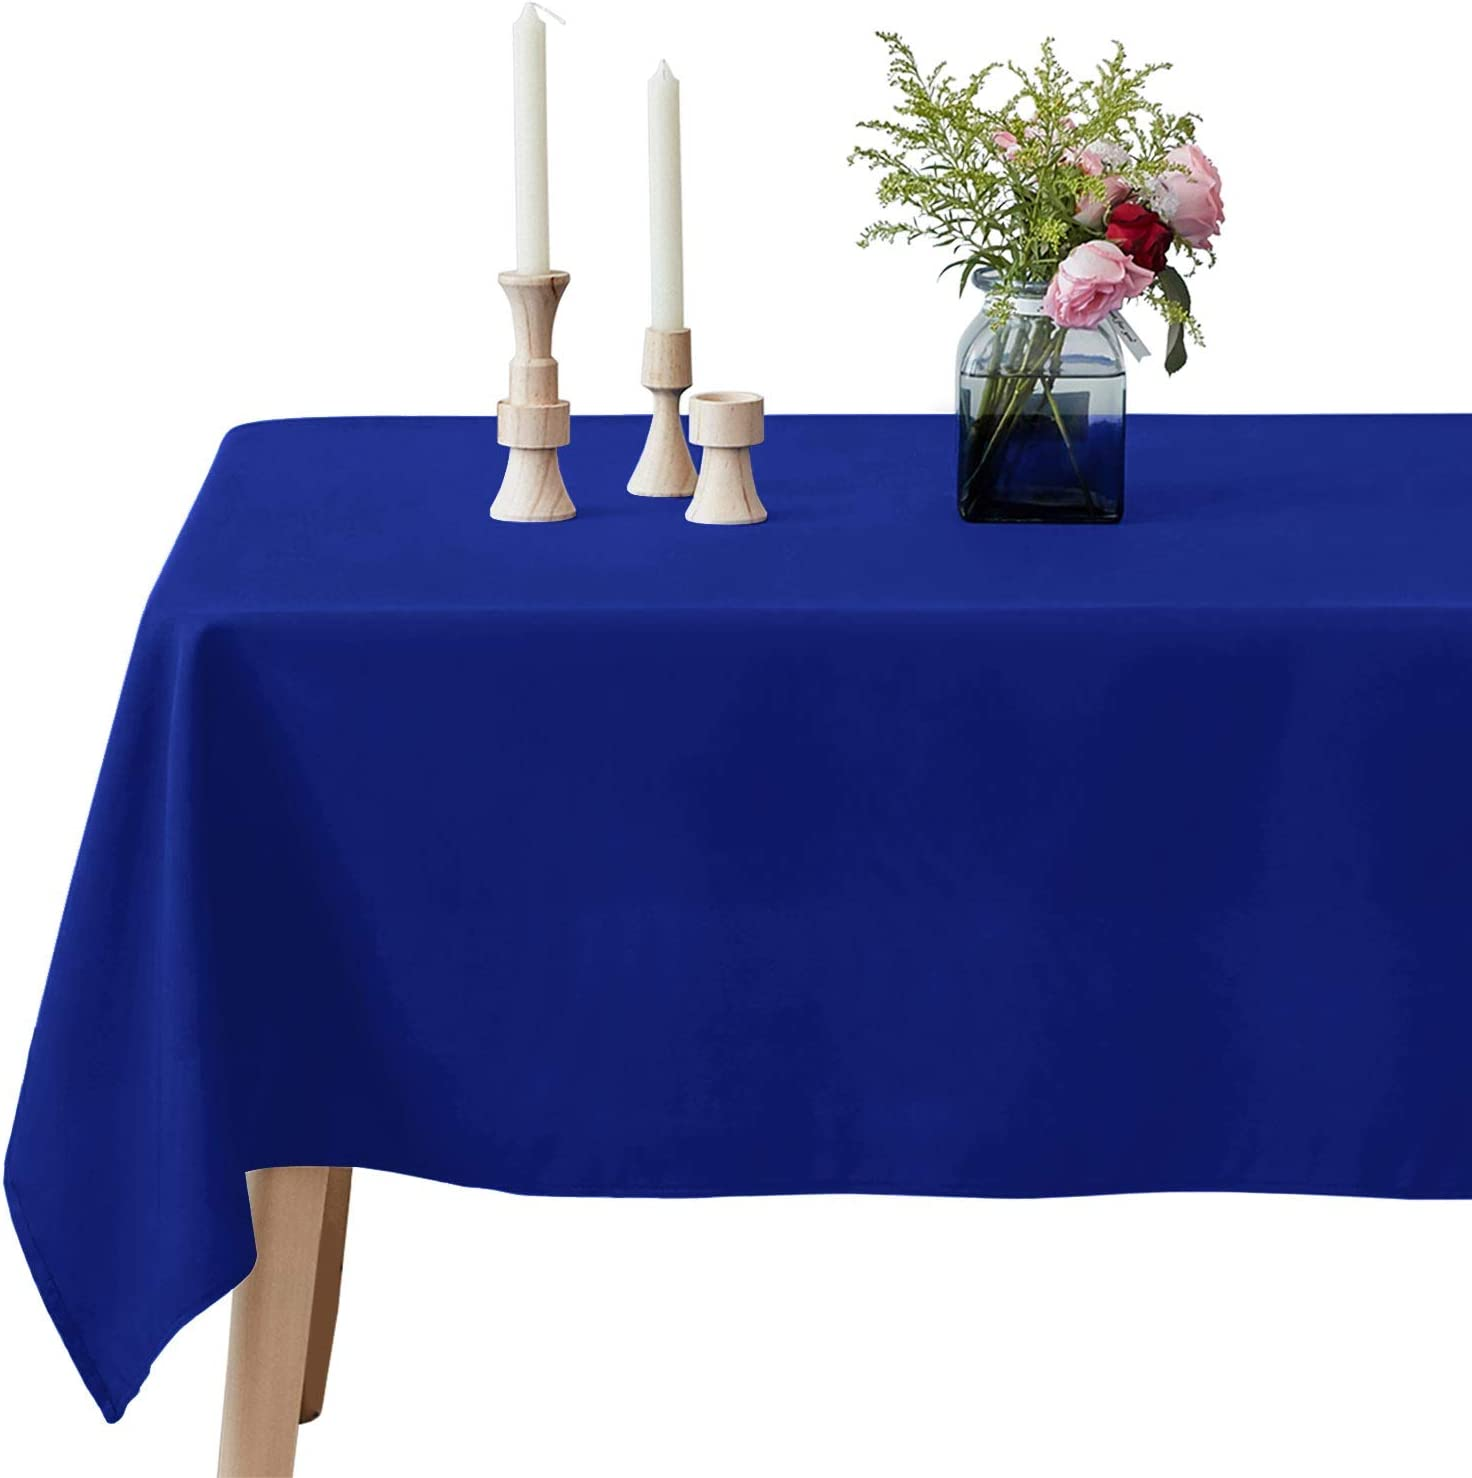 VEEYOO Rectangular Tablecloth 100% Polyester Oblong Table Cloth for Bridal Shower – Solid Soft Oval Table Cover for Wedding Party Restaurant Party Buffet Table (Royal Blue, 60x126 inch)